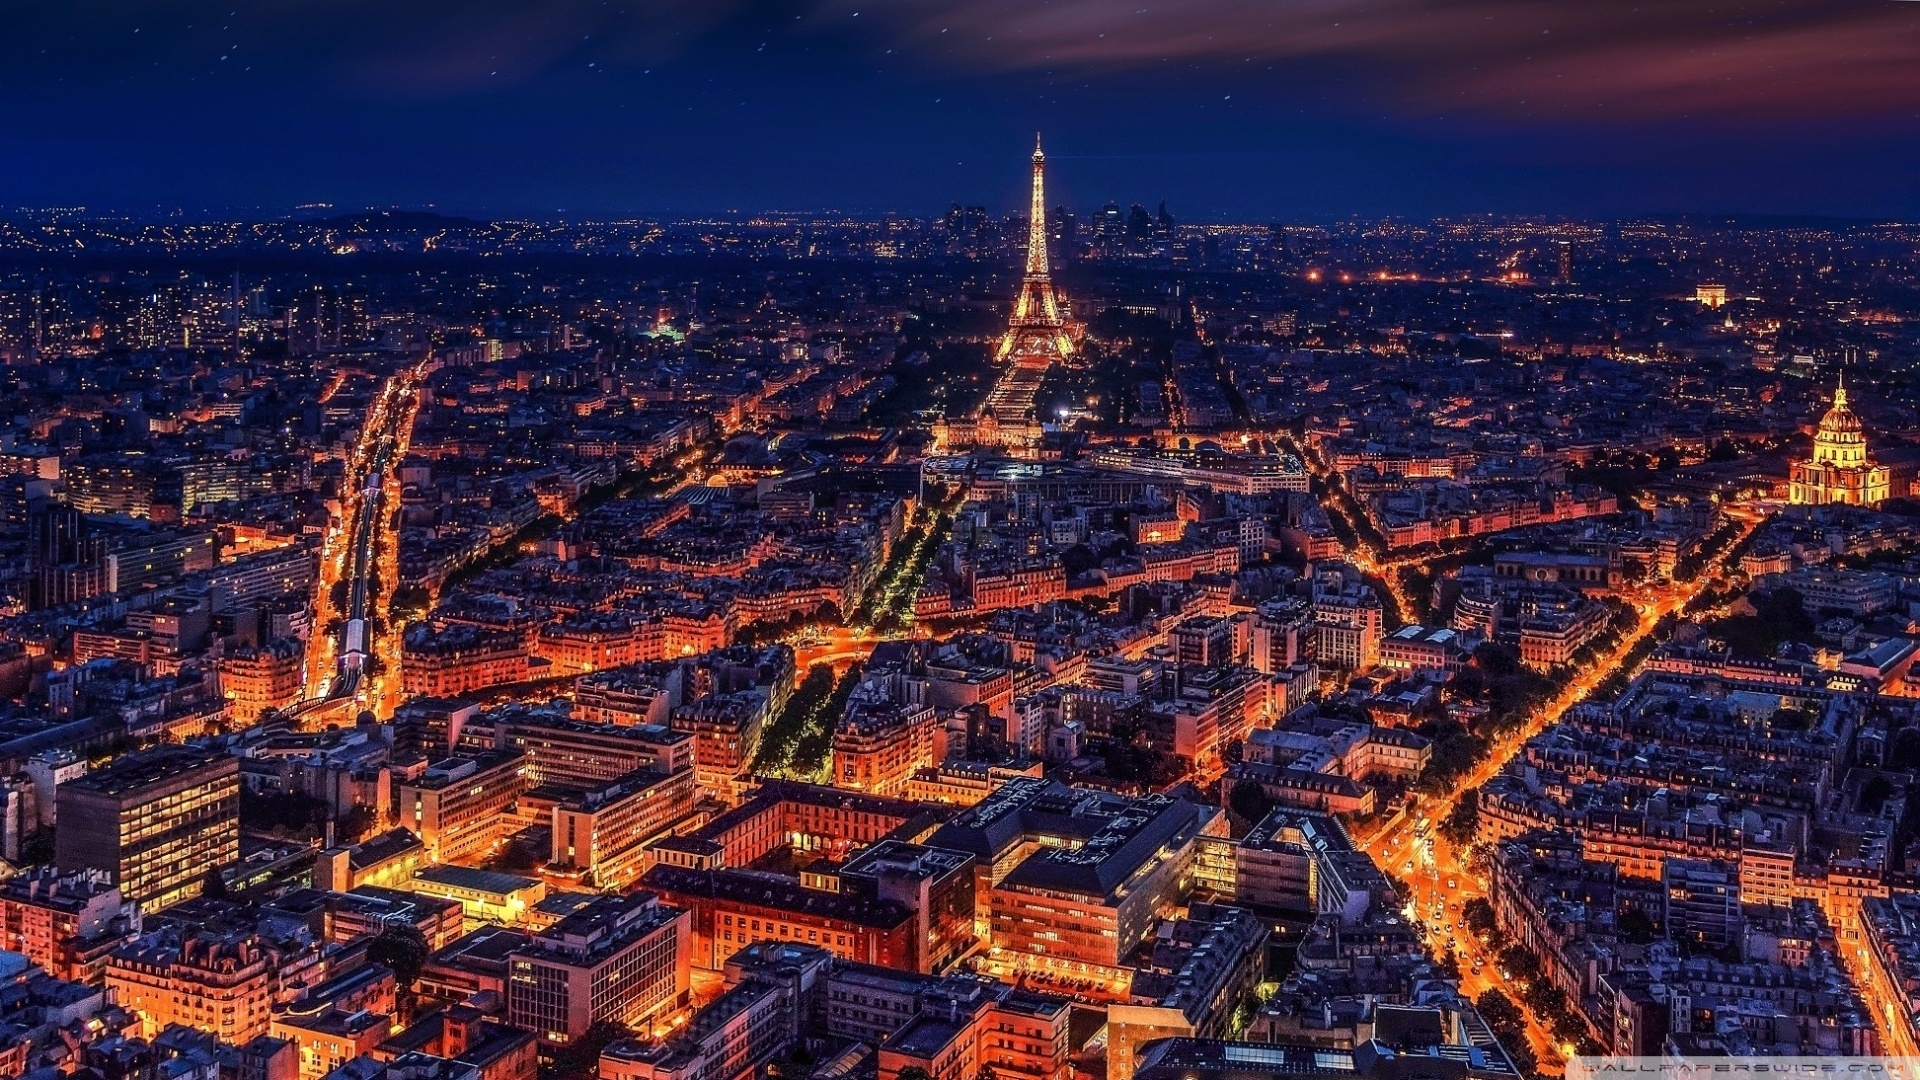 10 Most Popular Paris At Night Wallpapers FULL HD 1080p For PC Desktop